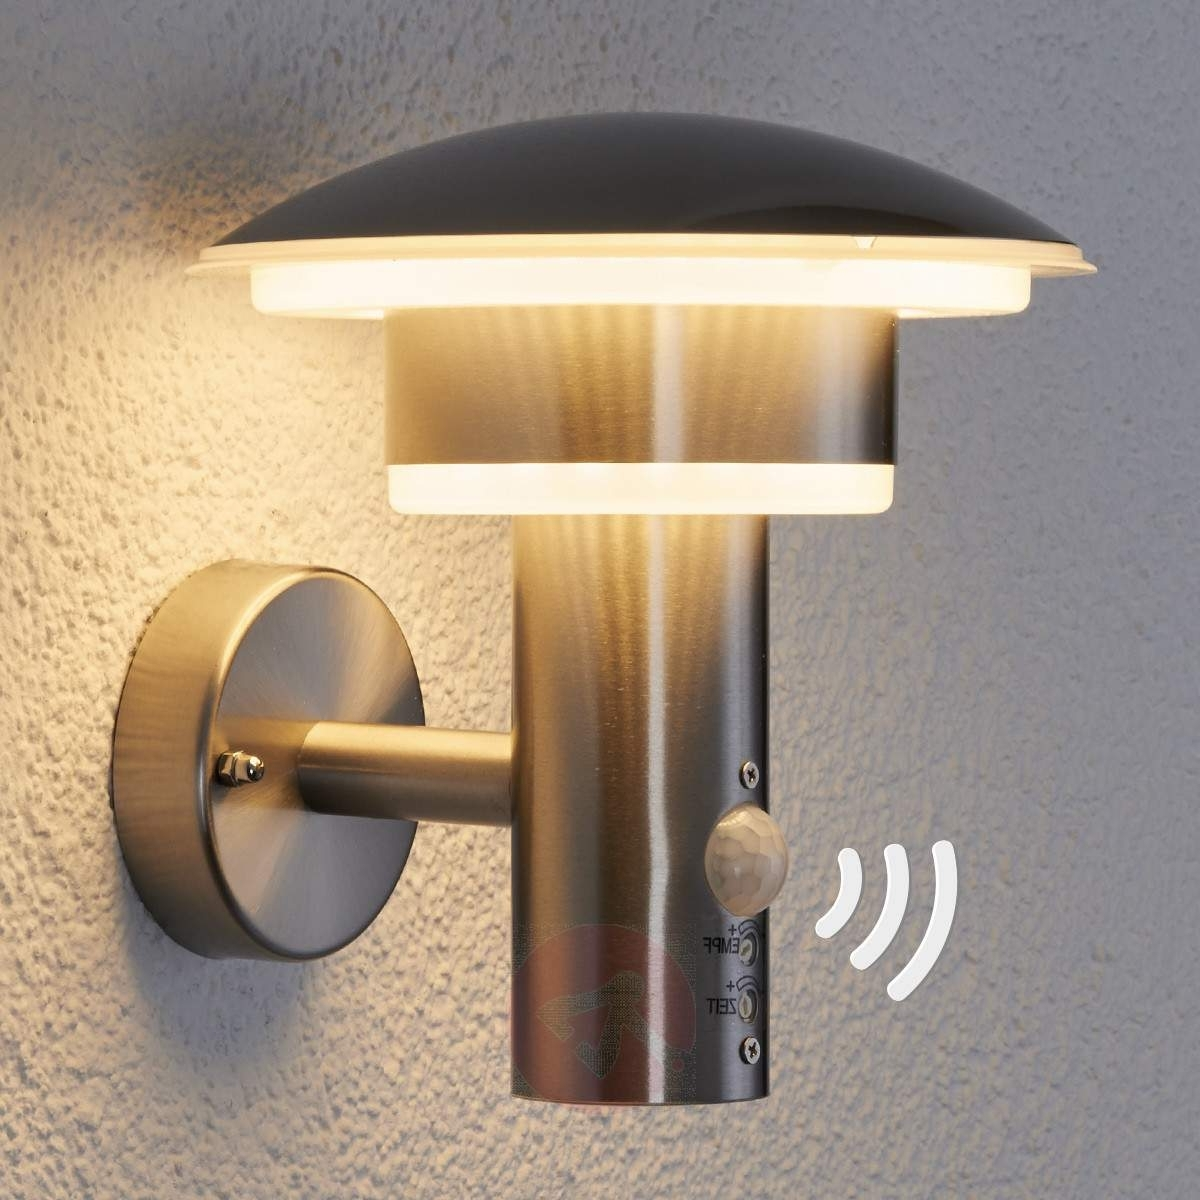 Outdoor Led Wall Lights With Sensor Within Popular Outdoor Led Wall Lights With Sensor • Led Lights Design (View 5 of 20)